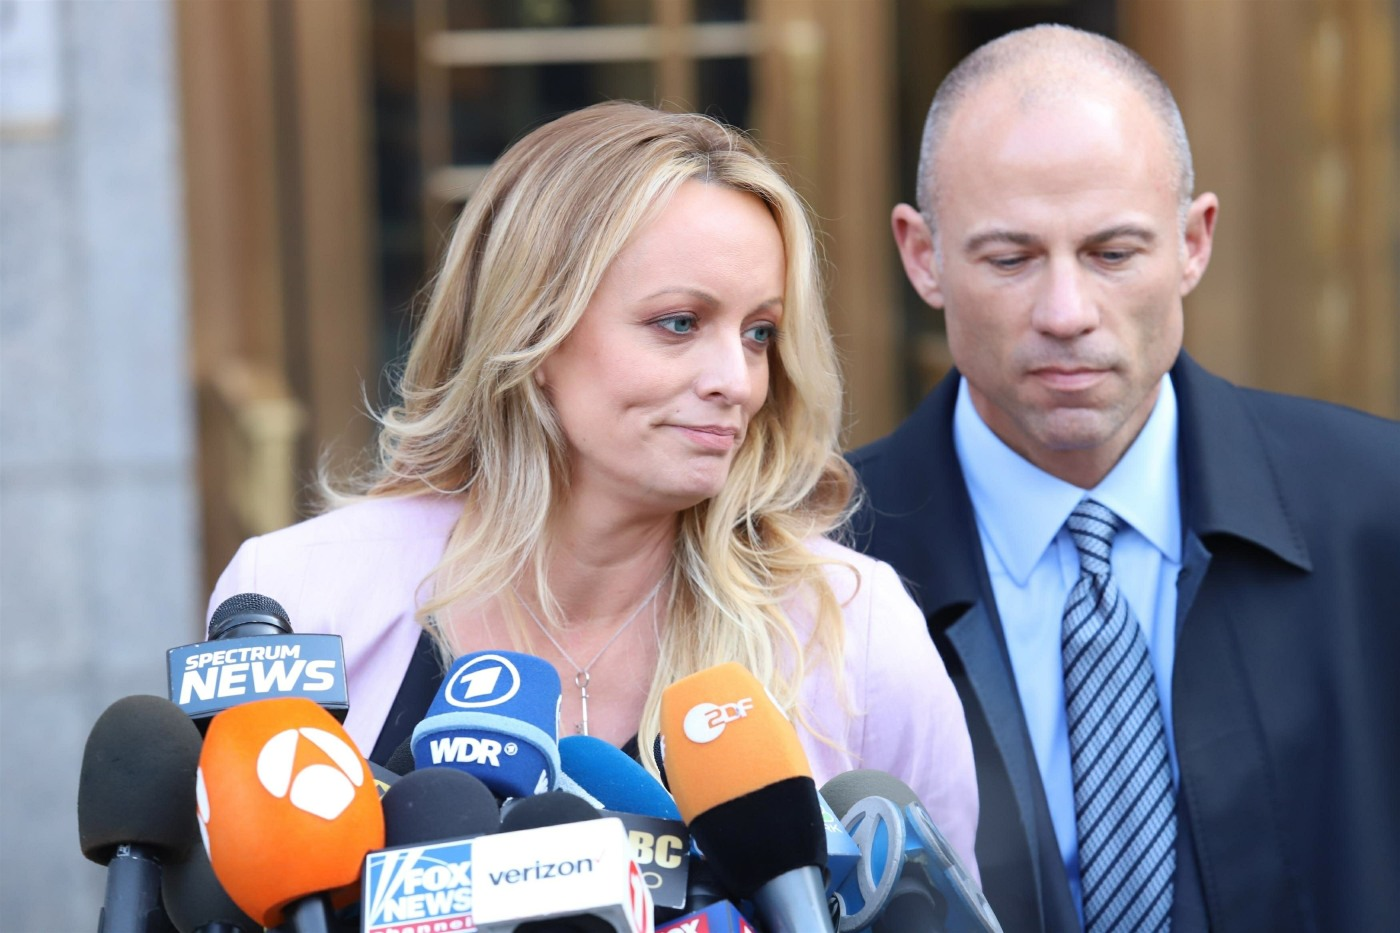 Stormy Daniels attends the Michael Cohen court hearing in NYC